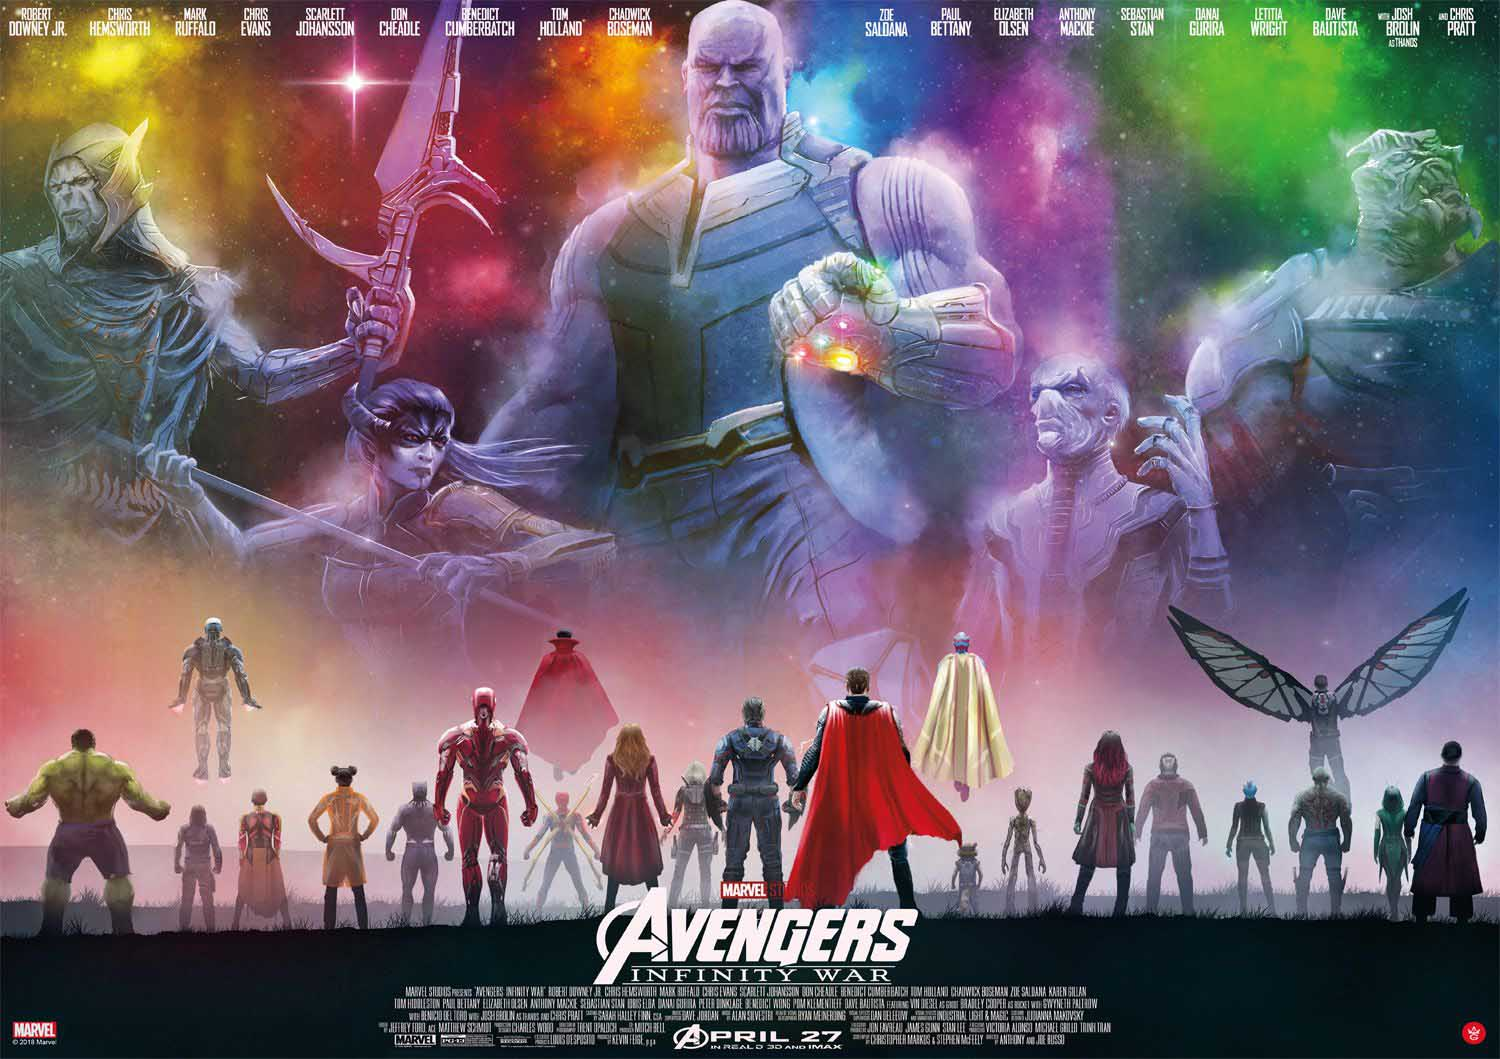 Avengers Infinity War - Scratch and Dent Movies / Books / TV Jigsaw Puzzle